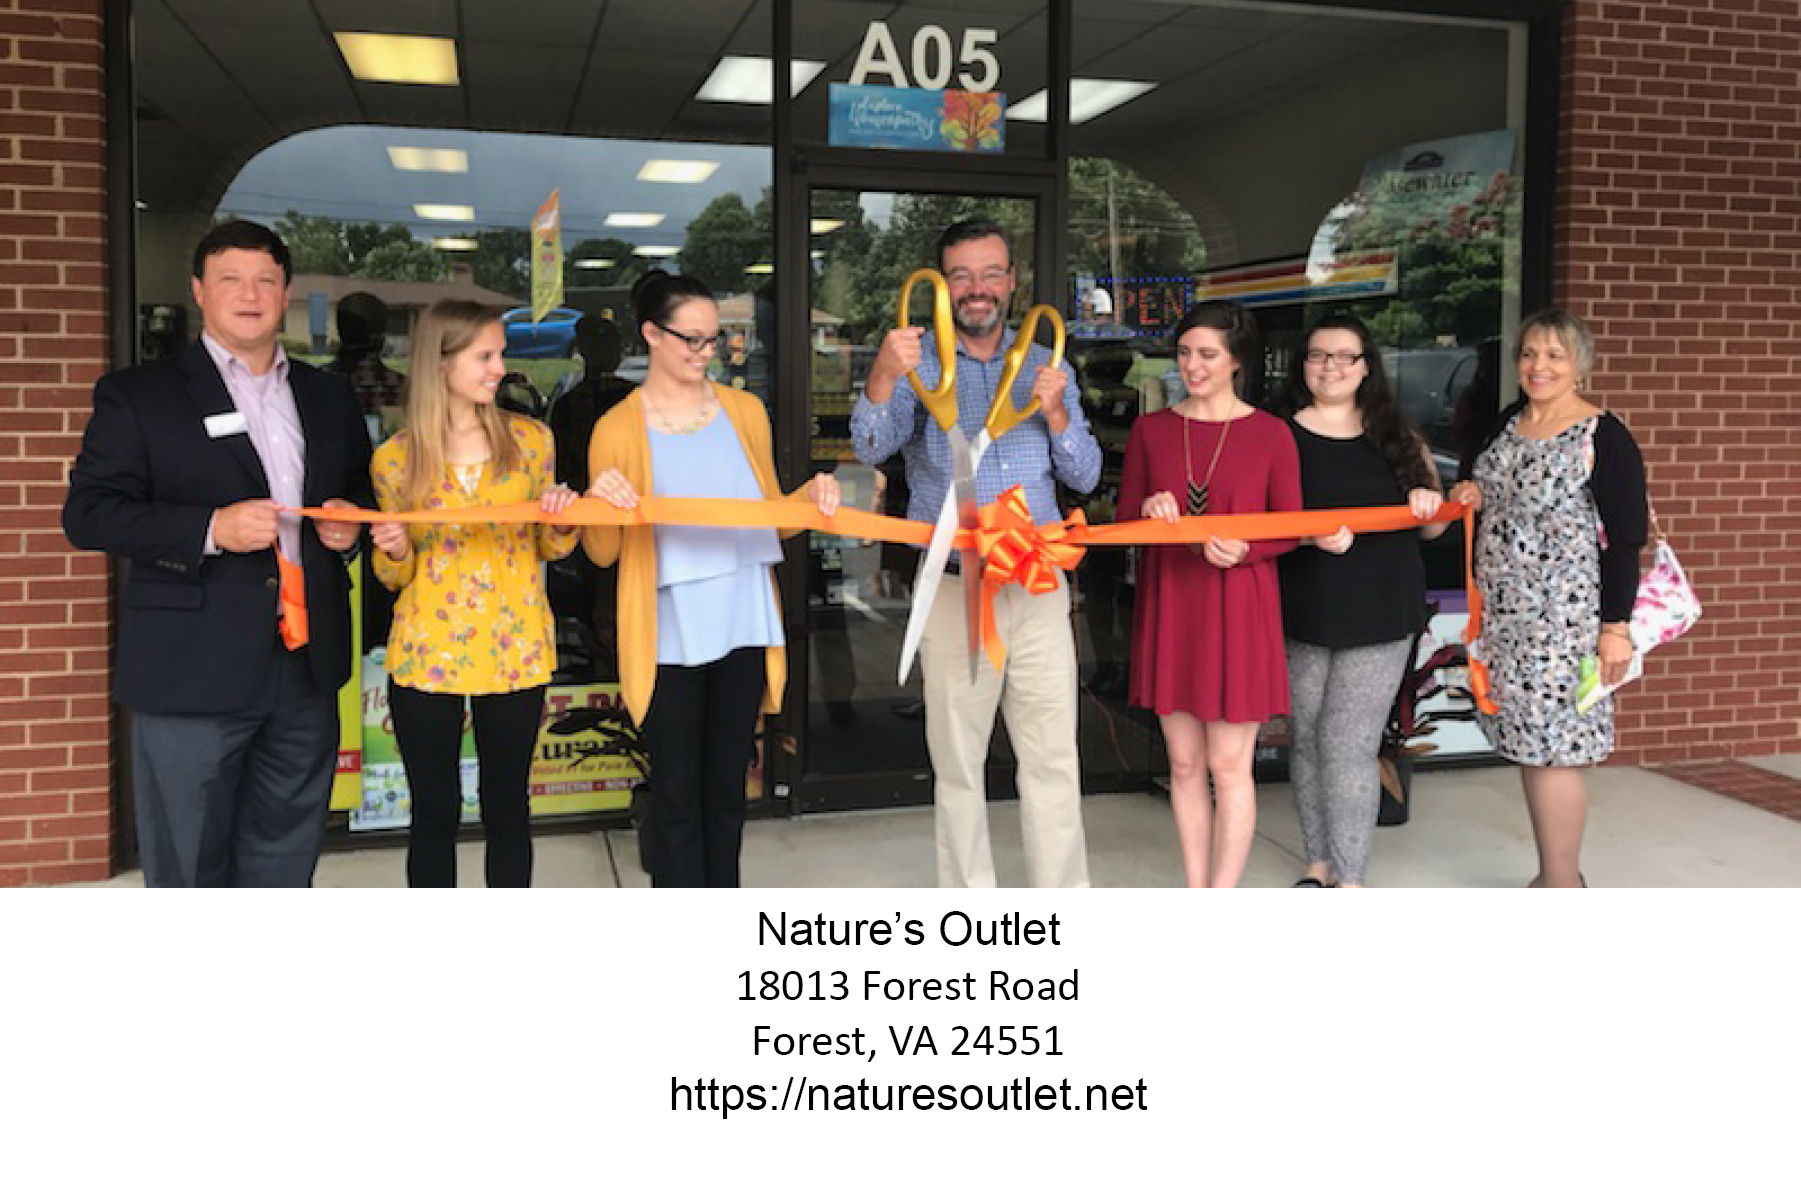 Nature's Outlet